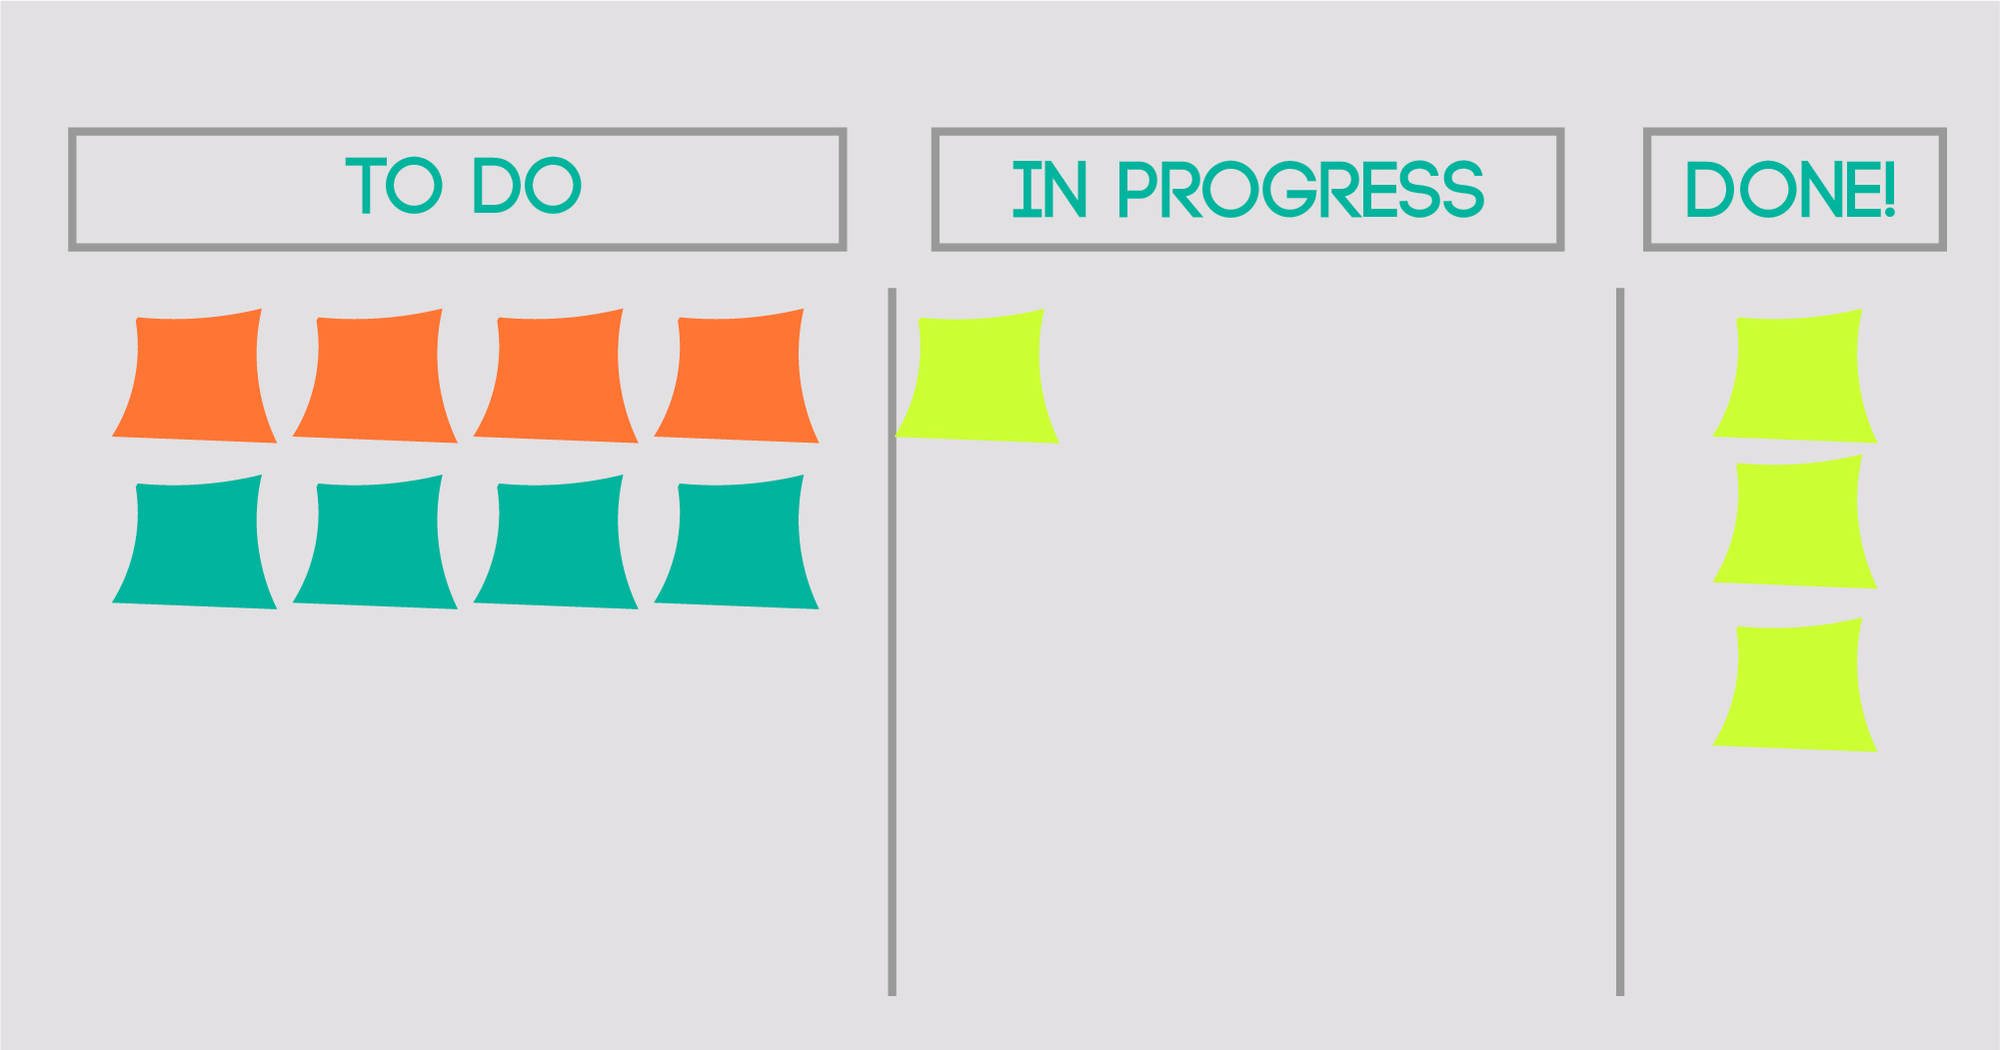 Online Architecture Design How To Use A Scrum Board To Maximize Personal And Team